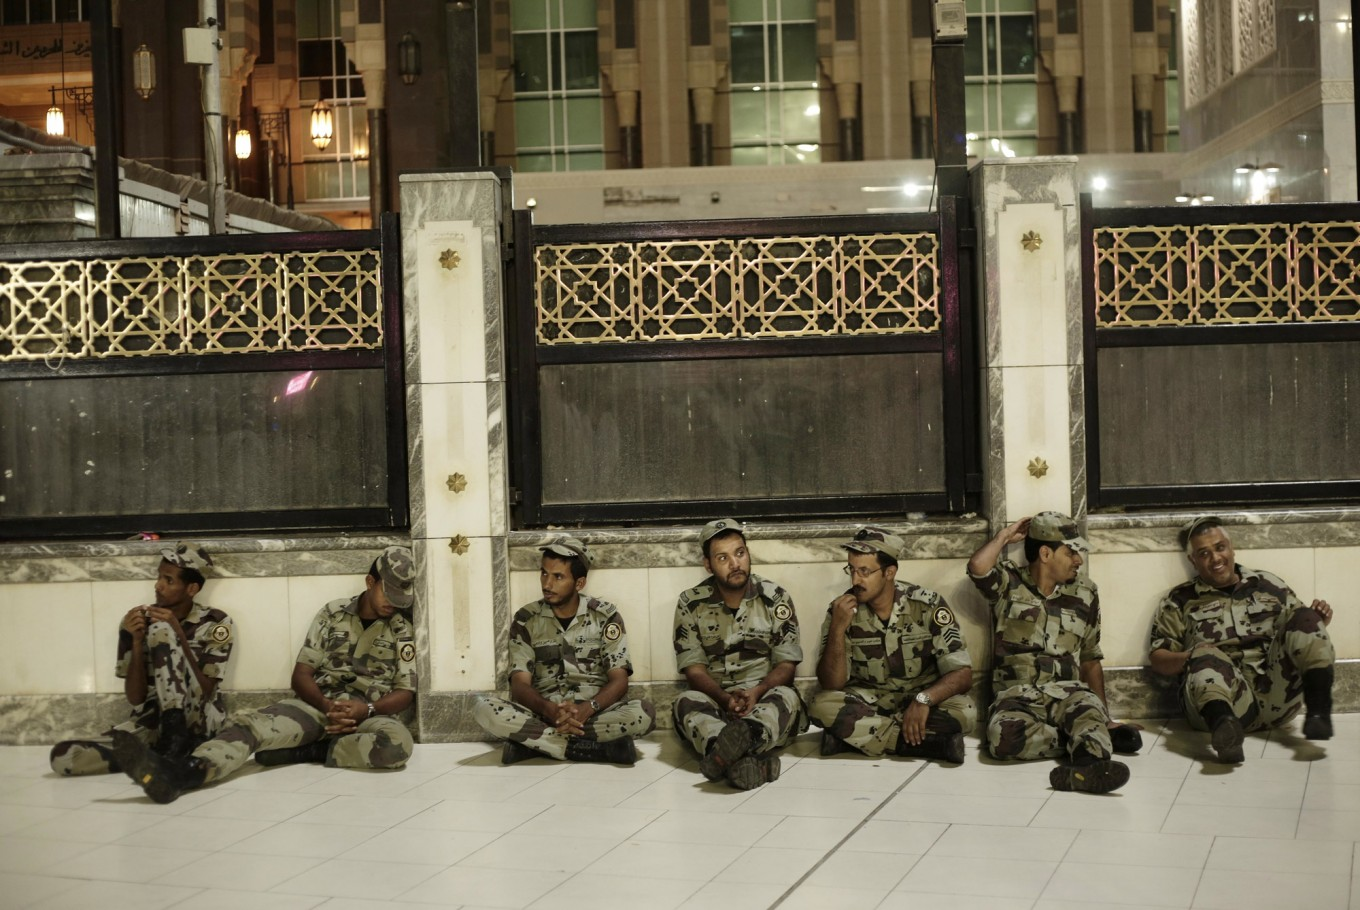 Saudi security rest before praying the Fajr, prayer before sunrise, outside the Grand Mosque in the Muslim holy city of Mecca, Saudi Arabia, Thursday, Sept. 8, 2016. Muslim pilgrims have begun arriving at the holiest sites in Islam ahead of the annual hajj pilgrimage in Saudi Arabia, with some weeping with their hands outstretched for a fleeting touch of the Kaaba. The cube-shaped shrine, at the center of Mecca's Grand Mosque, is the site the world's 1.6 billion Muslims pray toward five times a day. AP Photo/Nariman El-Mofty